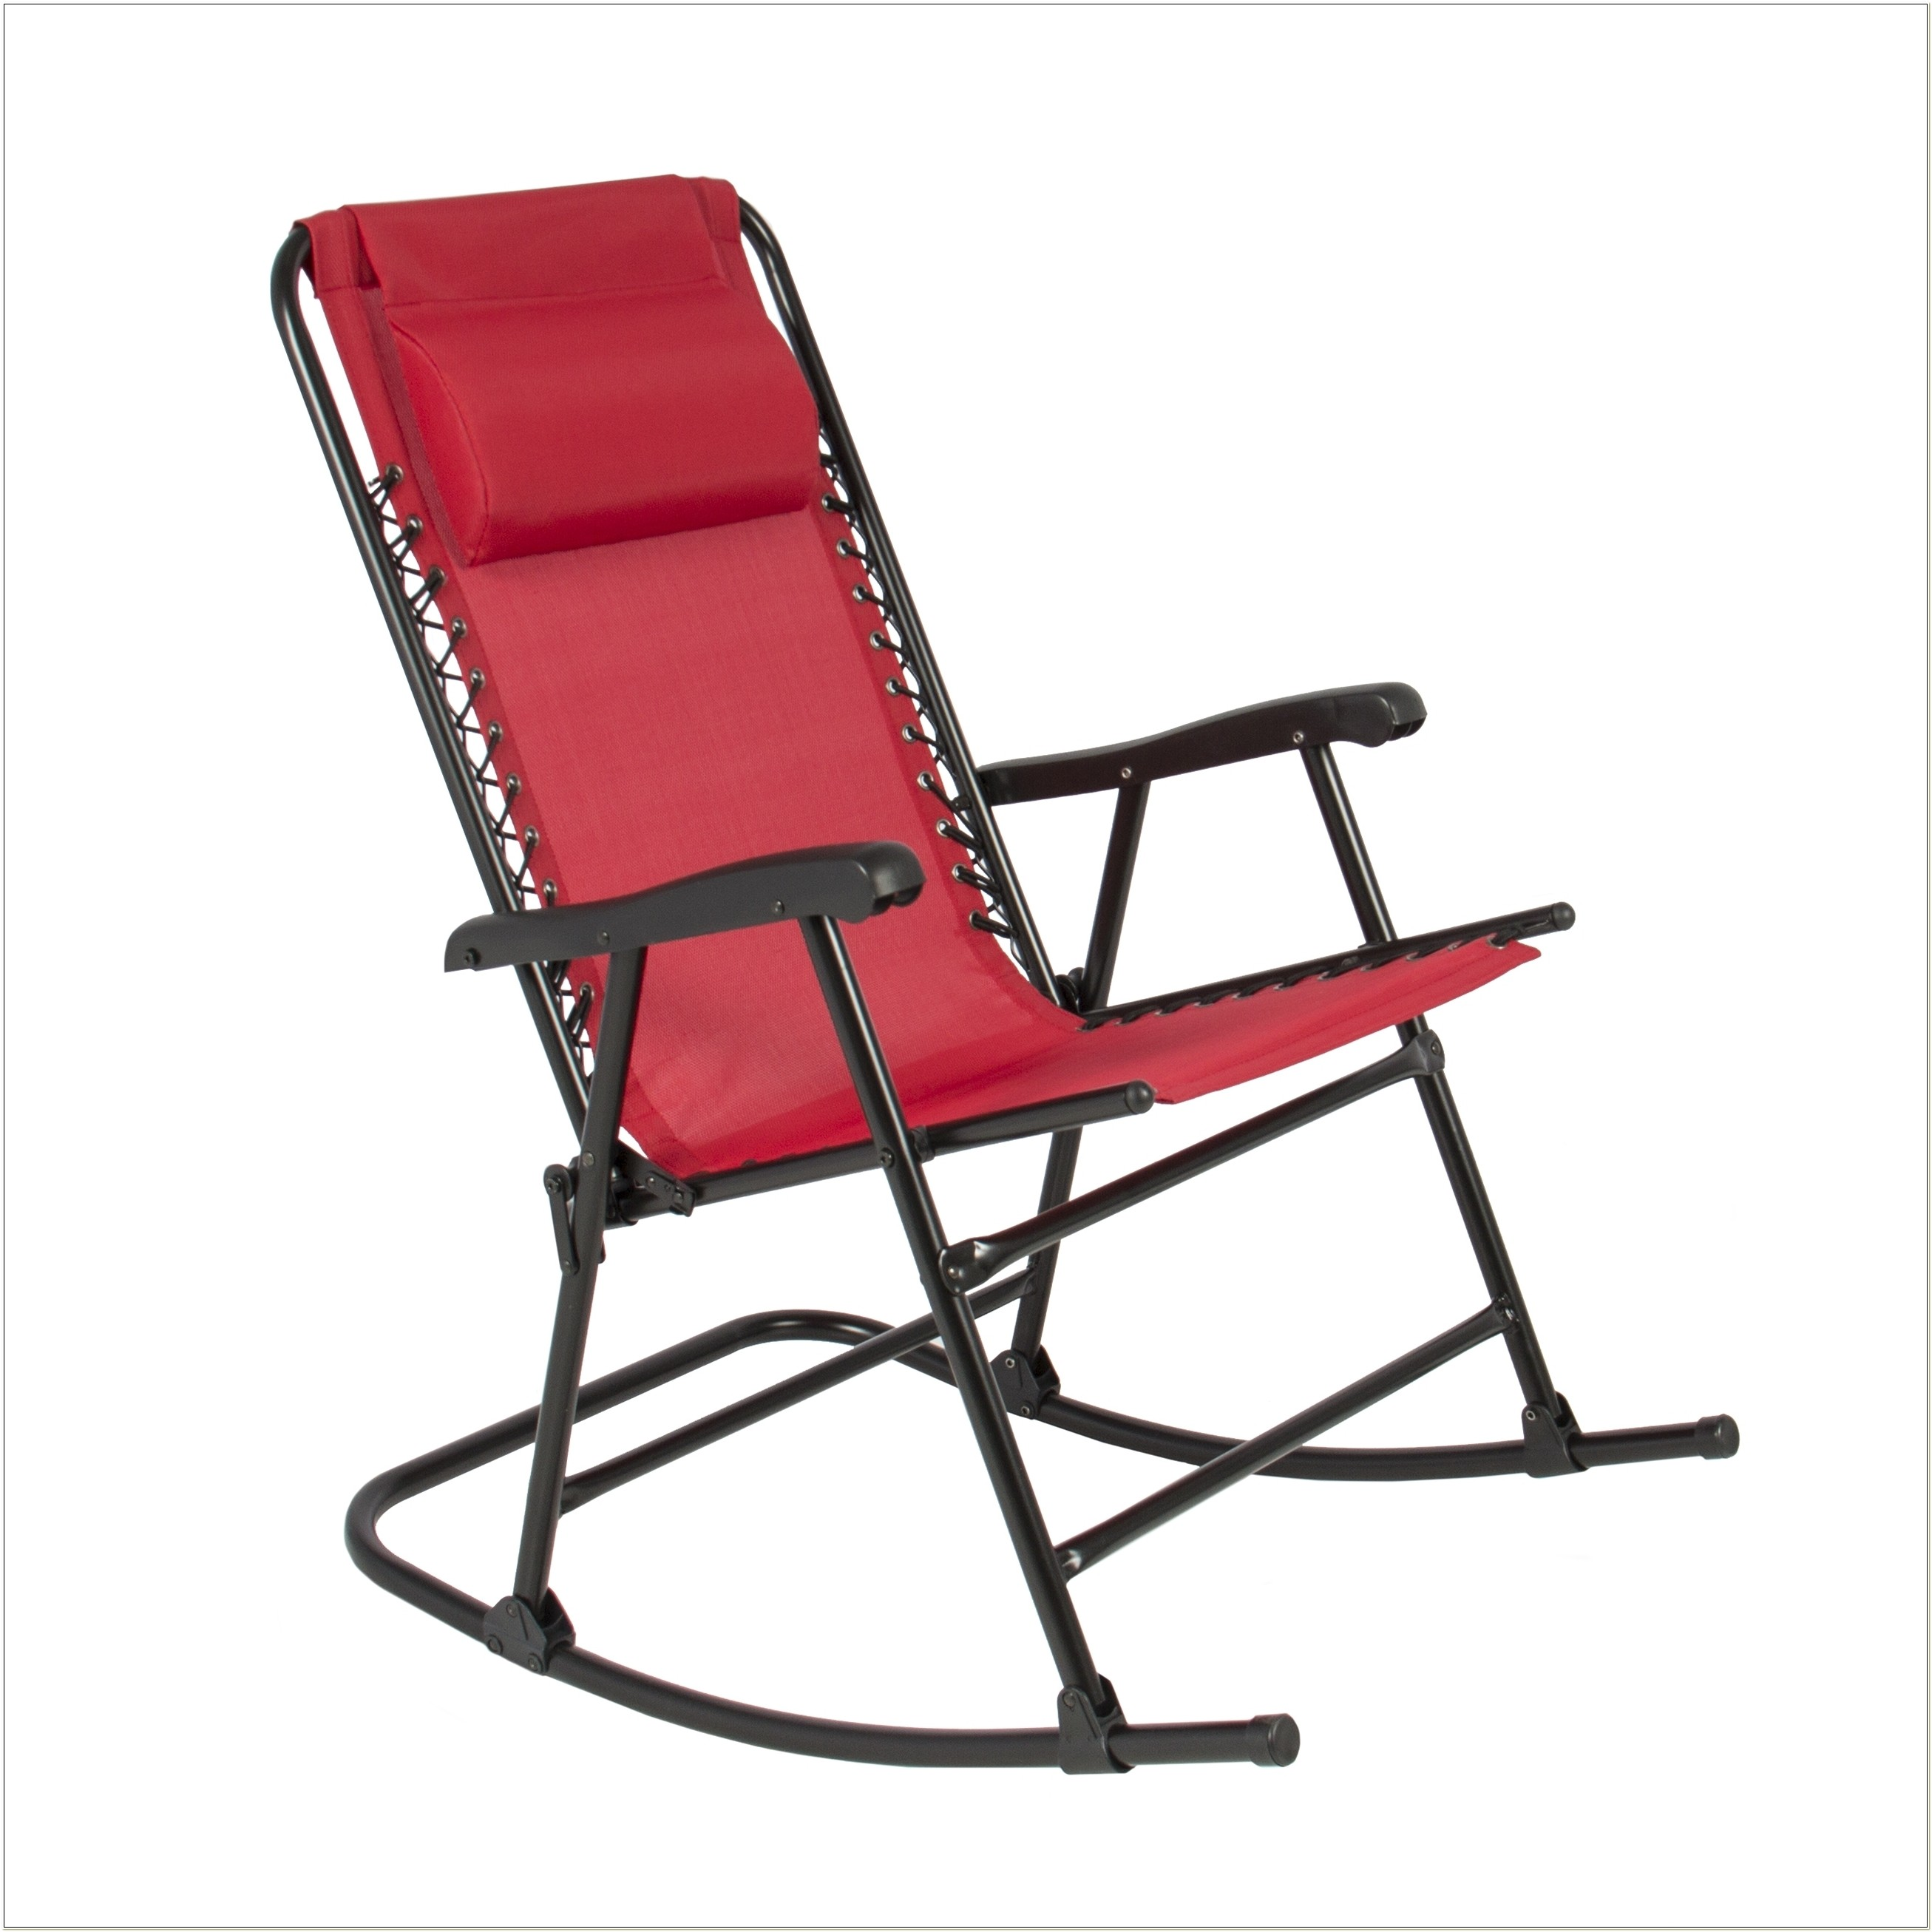 Campsmart Folding Rocking Chair